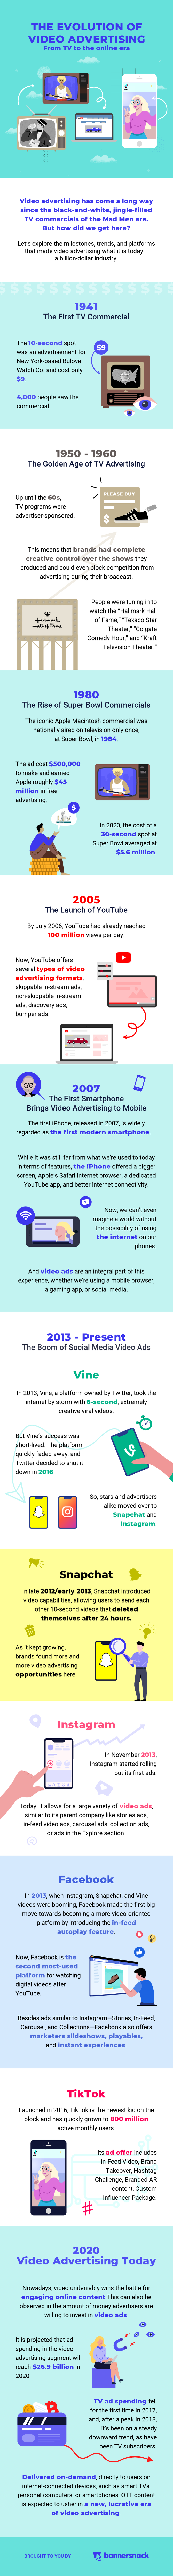 infographic evolution of video advertising